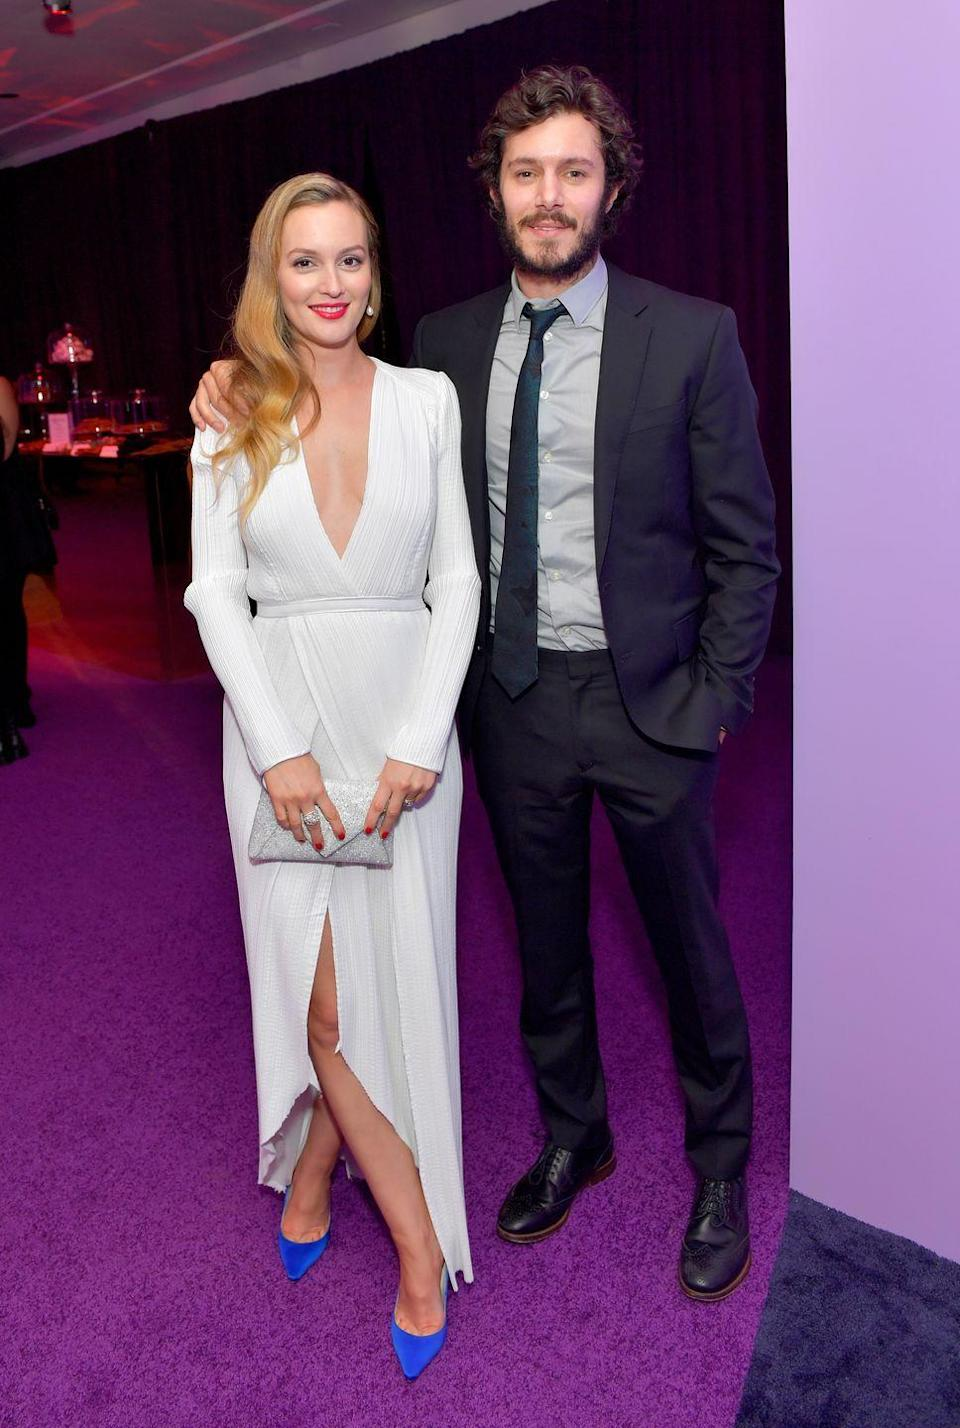 """<p>Leighton Meester, like her <em>Gossip Girl </em>co-star Blake Lively, tends to keep her daughter Arlo Day Brody out of the spotlight. Last March, almost two years after her daughter with husband Adam Brody was born, Leighton revealed why she doesn't talk much about her. </p><p>""""I don't talk about Arlo very much,"""" she said in an interview with<em> <a href=""""http://www.refinery29.com/2017/03/144583/leighton-meester-bio-photos-making-history"""" rel=""""nofollow noopener"""" target=""""_blank"""" data-ylk=""""slk:Refinery29"""" class=""""link rapid-noclick-resp""""><em>Refinery29</em></a></em>. """"I am very proud of <span class=""""redactor-unlink"""">that area of my life</span>. But I'm also really proud of the show, and of the work I do."""" She added, """"I think the perception is: You're an ingenue, or you're an icon, or you're a mom. There's no in between.""""</p>"""